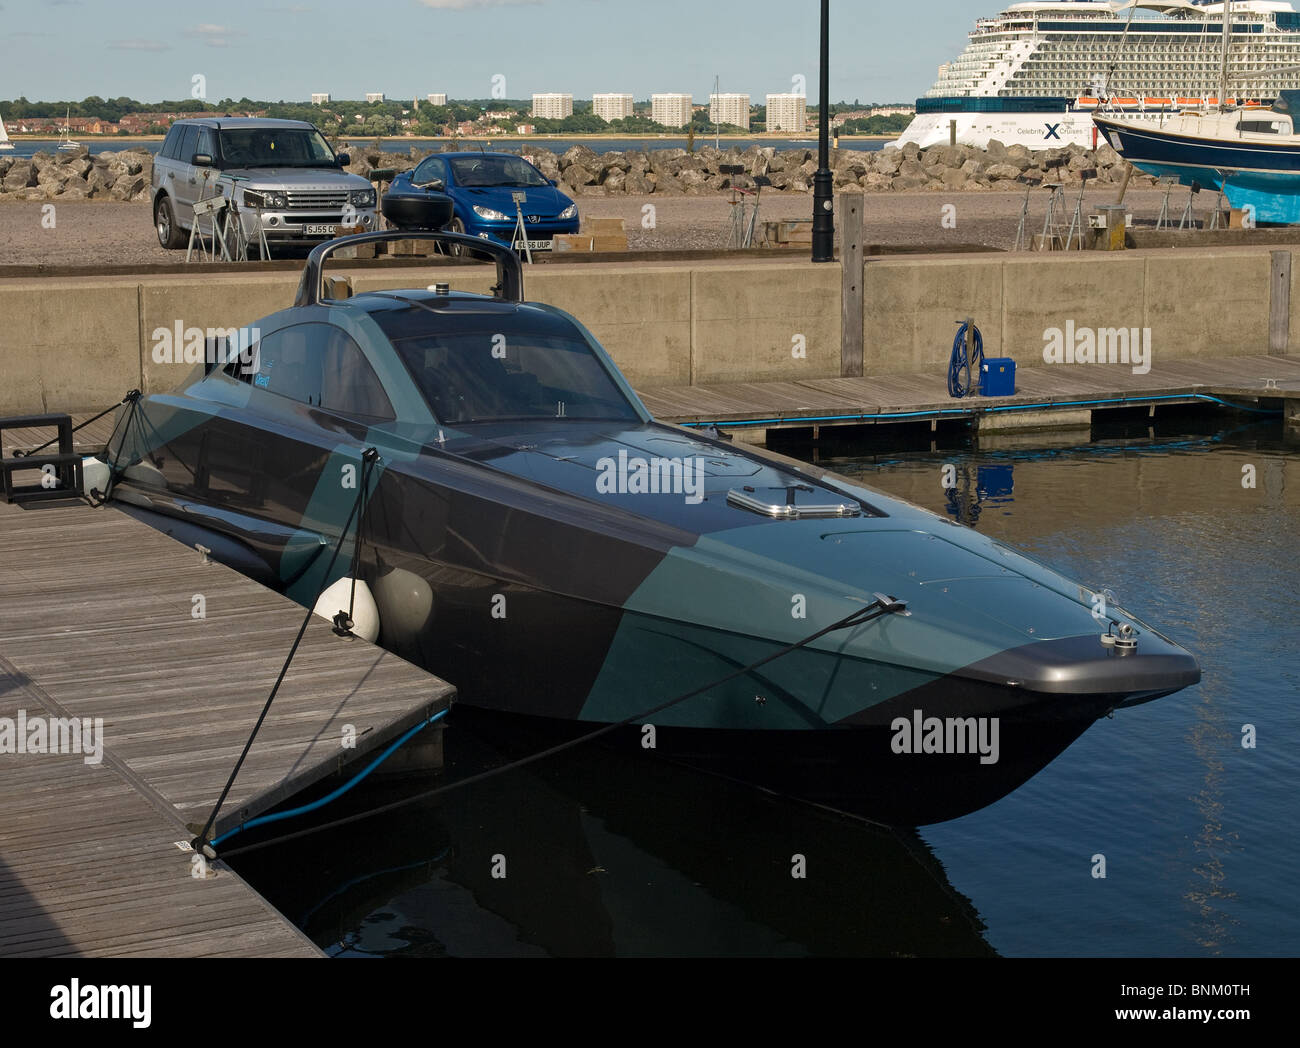 The XSR military interceptor boat berthed in Southampton England UK - Stock Image